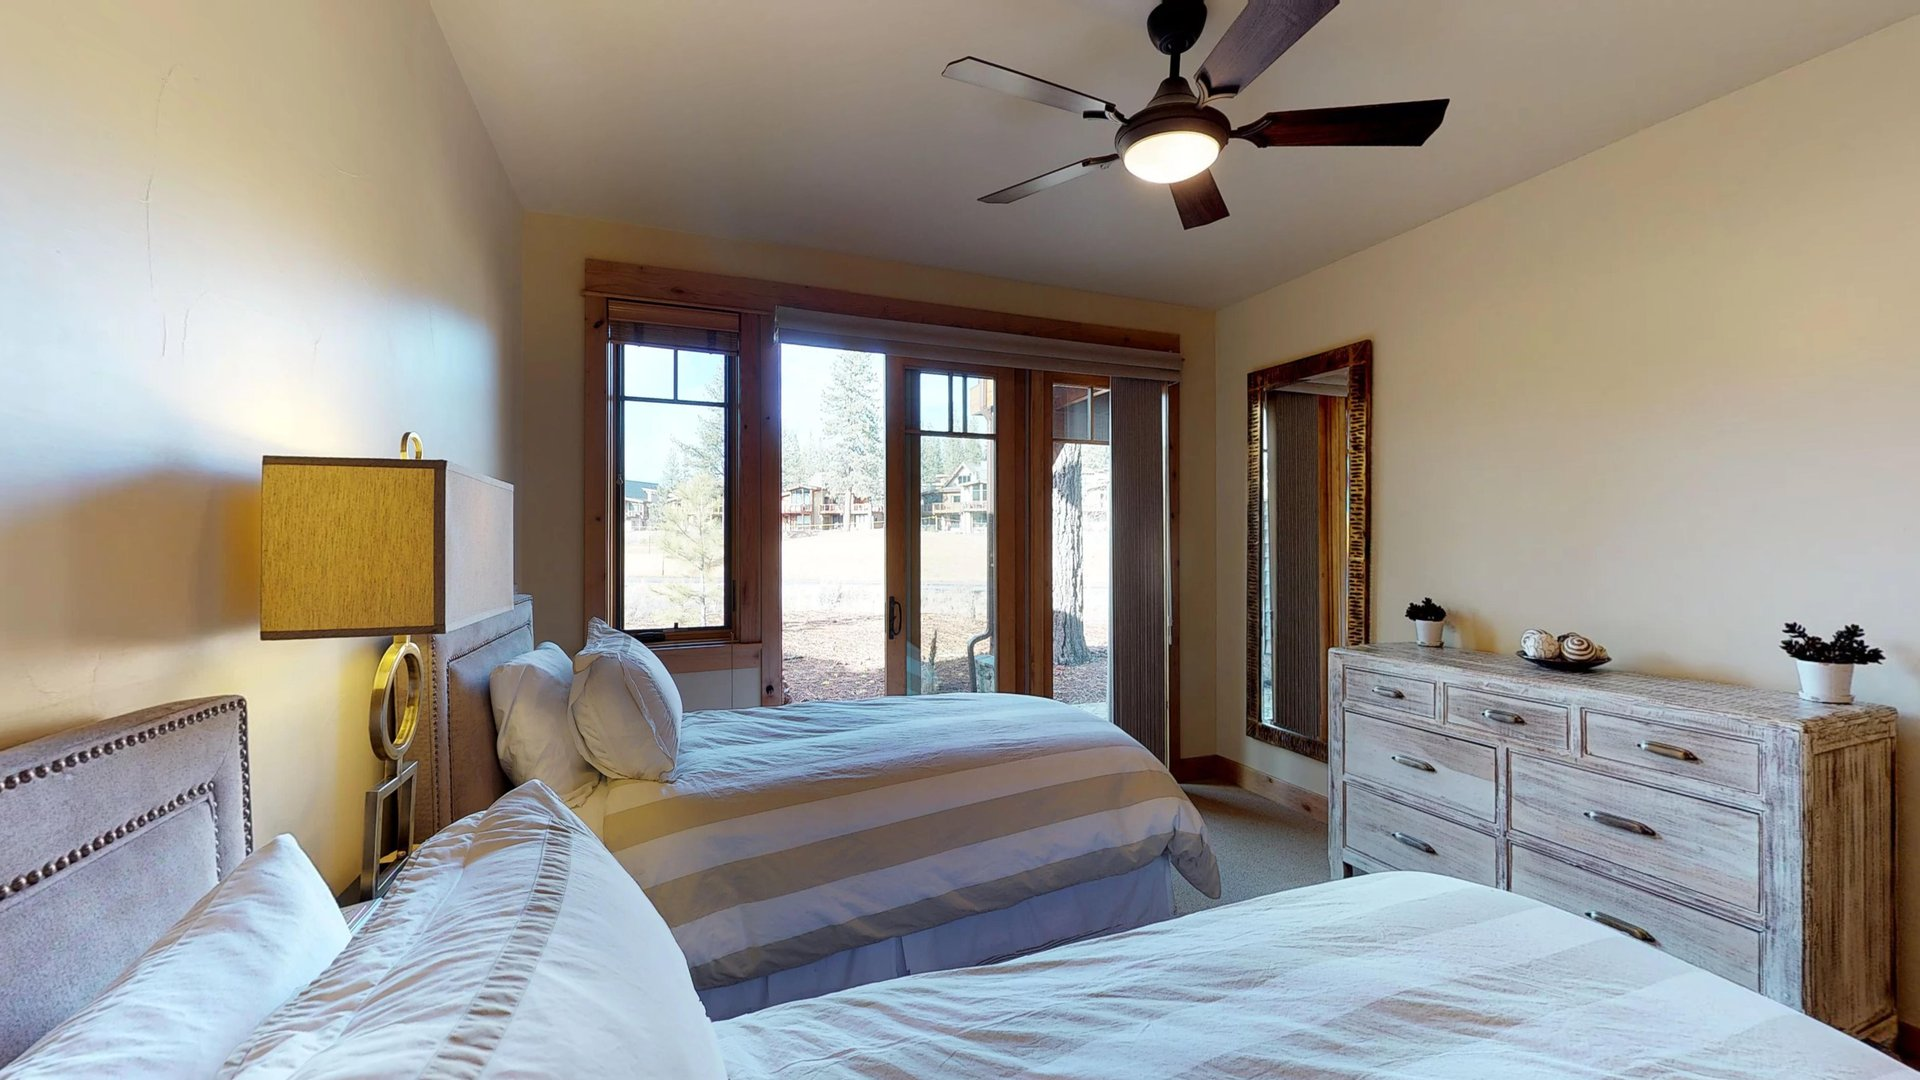 Bedroom Features Two Beds, Wooden Dresser, and Windows.